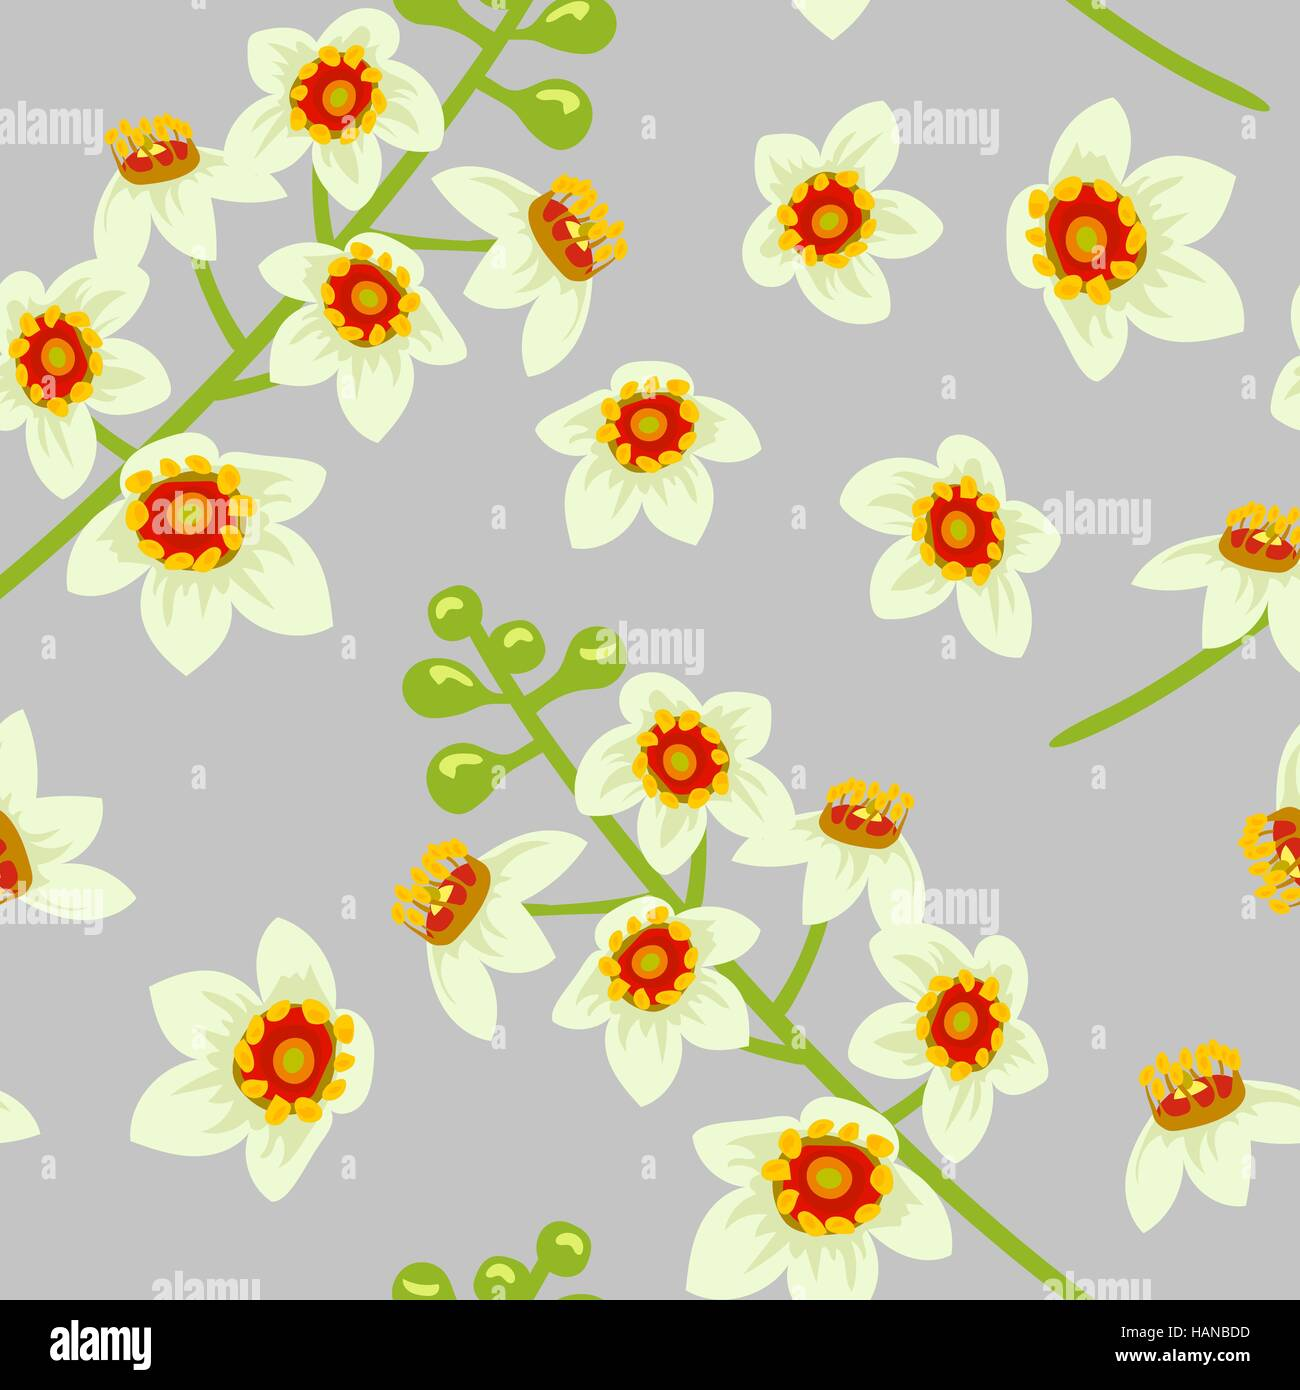 Frankincense flower seamless pattern vector. Boswellia tree flowers. Stock Vector